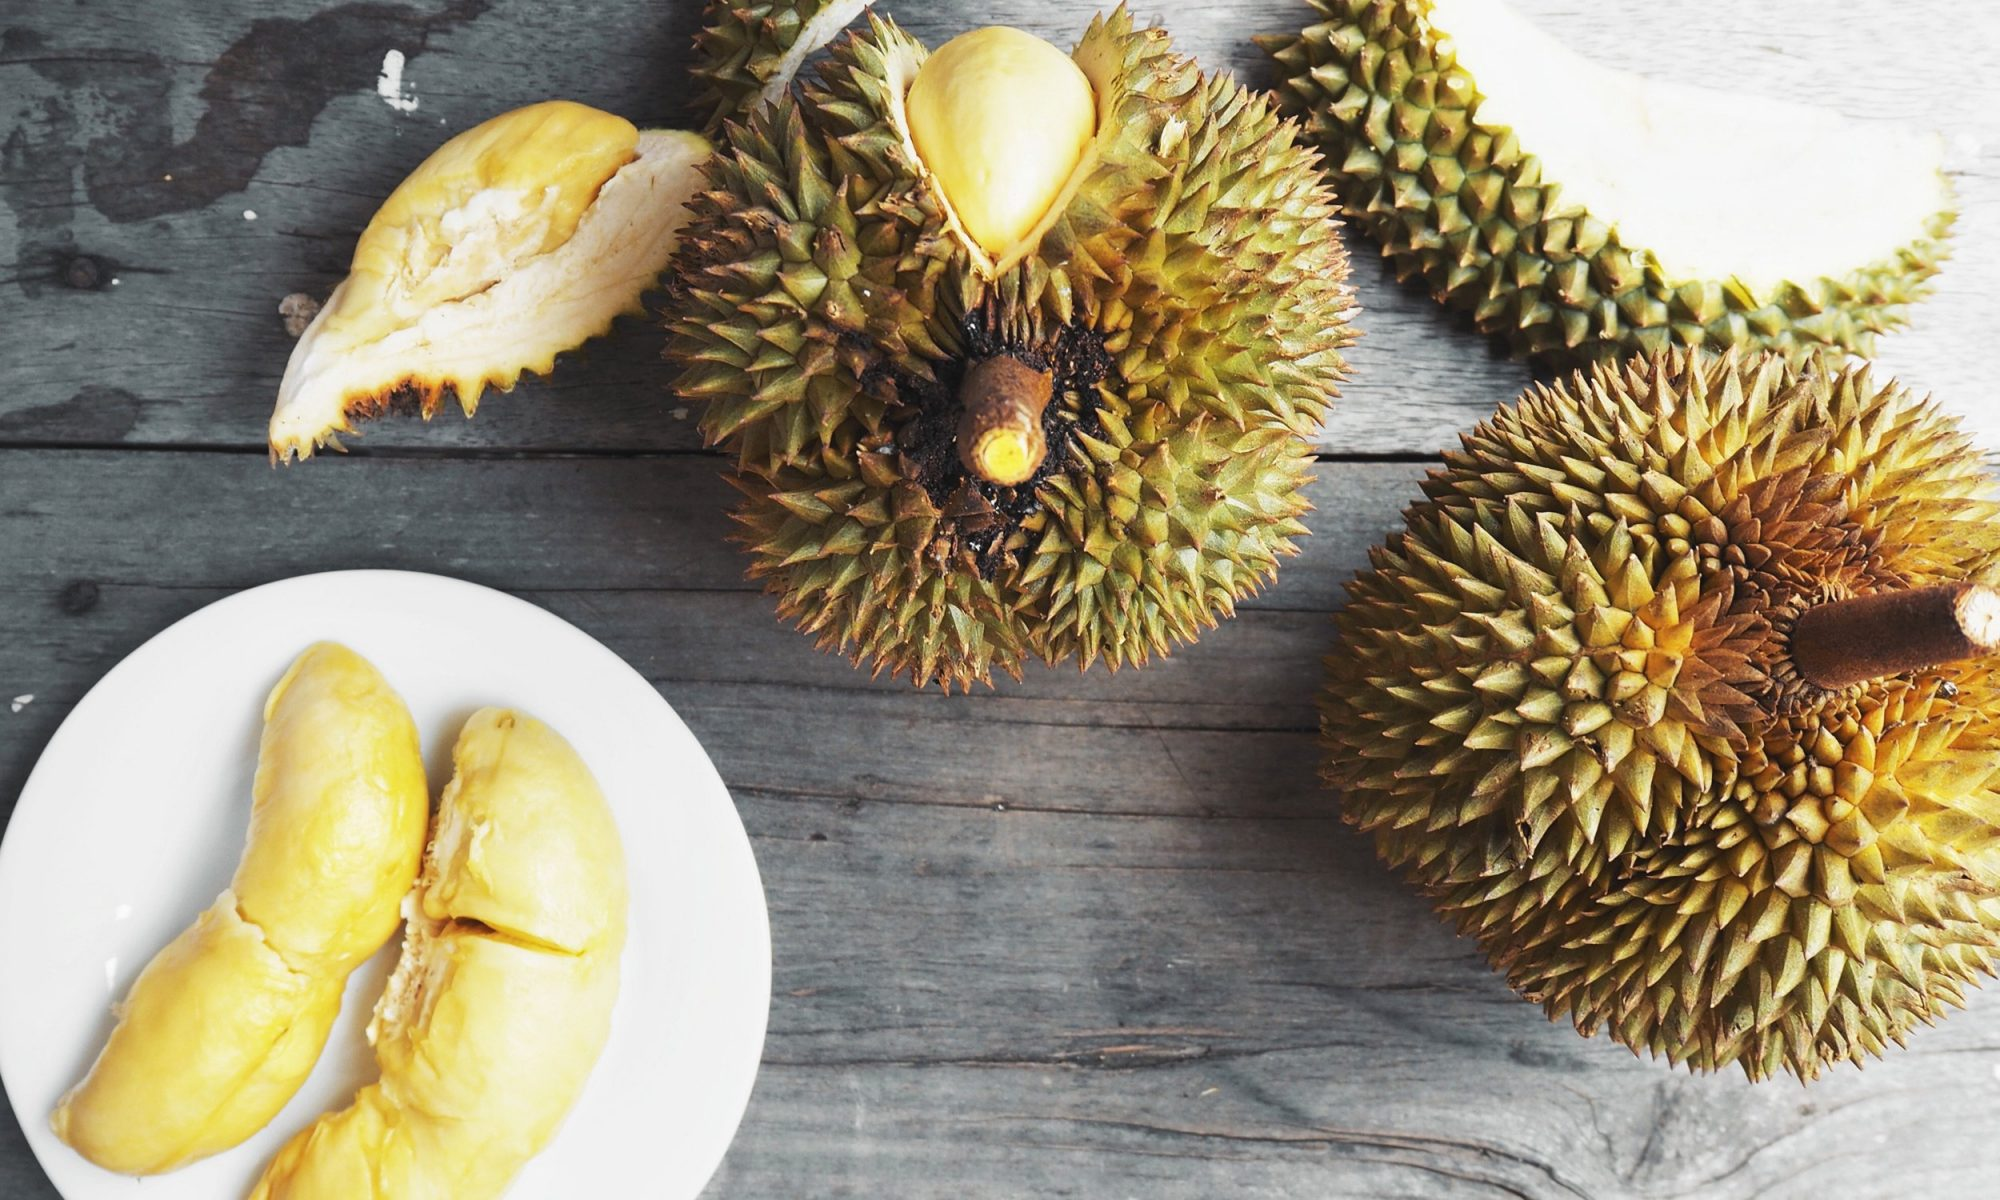 EC: Scientists Have Figured Out Why Durian Smells So Bad